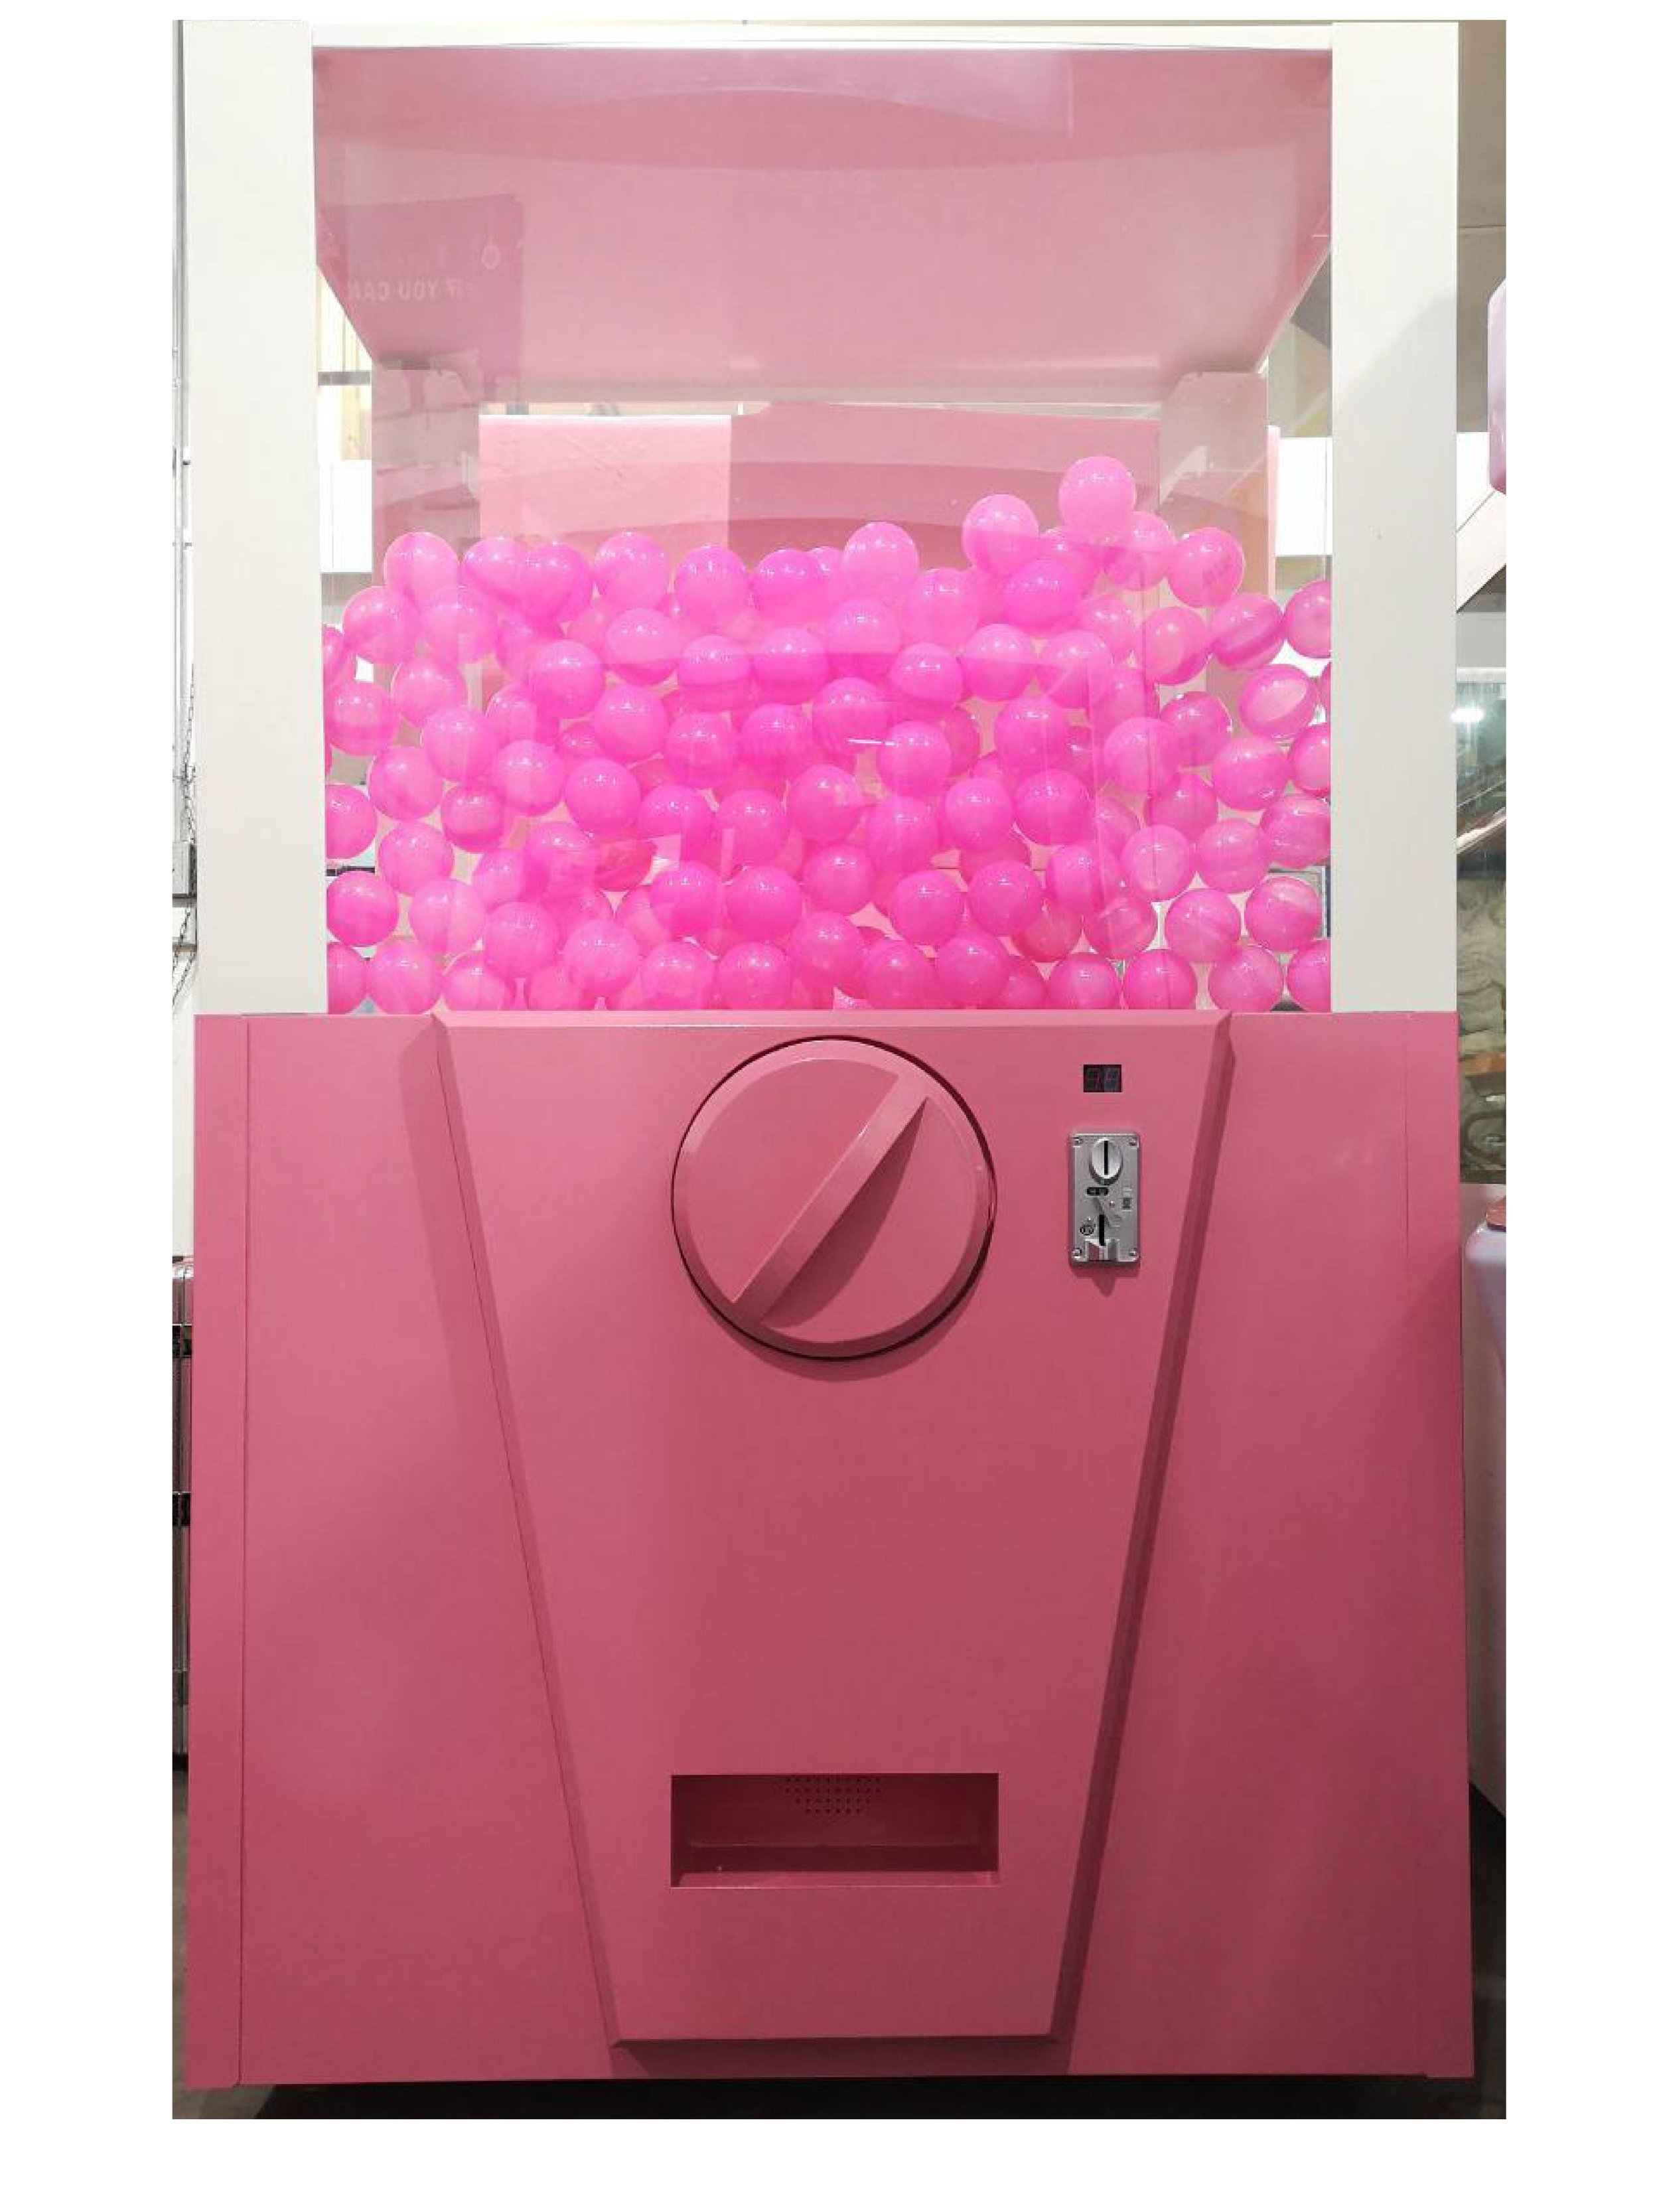 Test your luck with this capsule ball machine and see what prizes you will get!